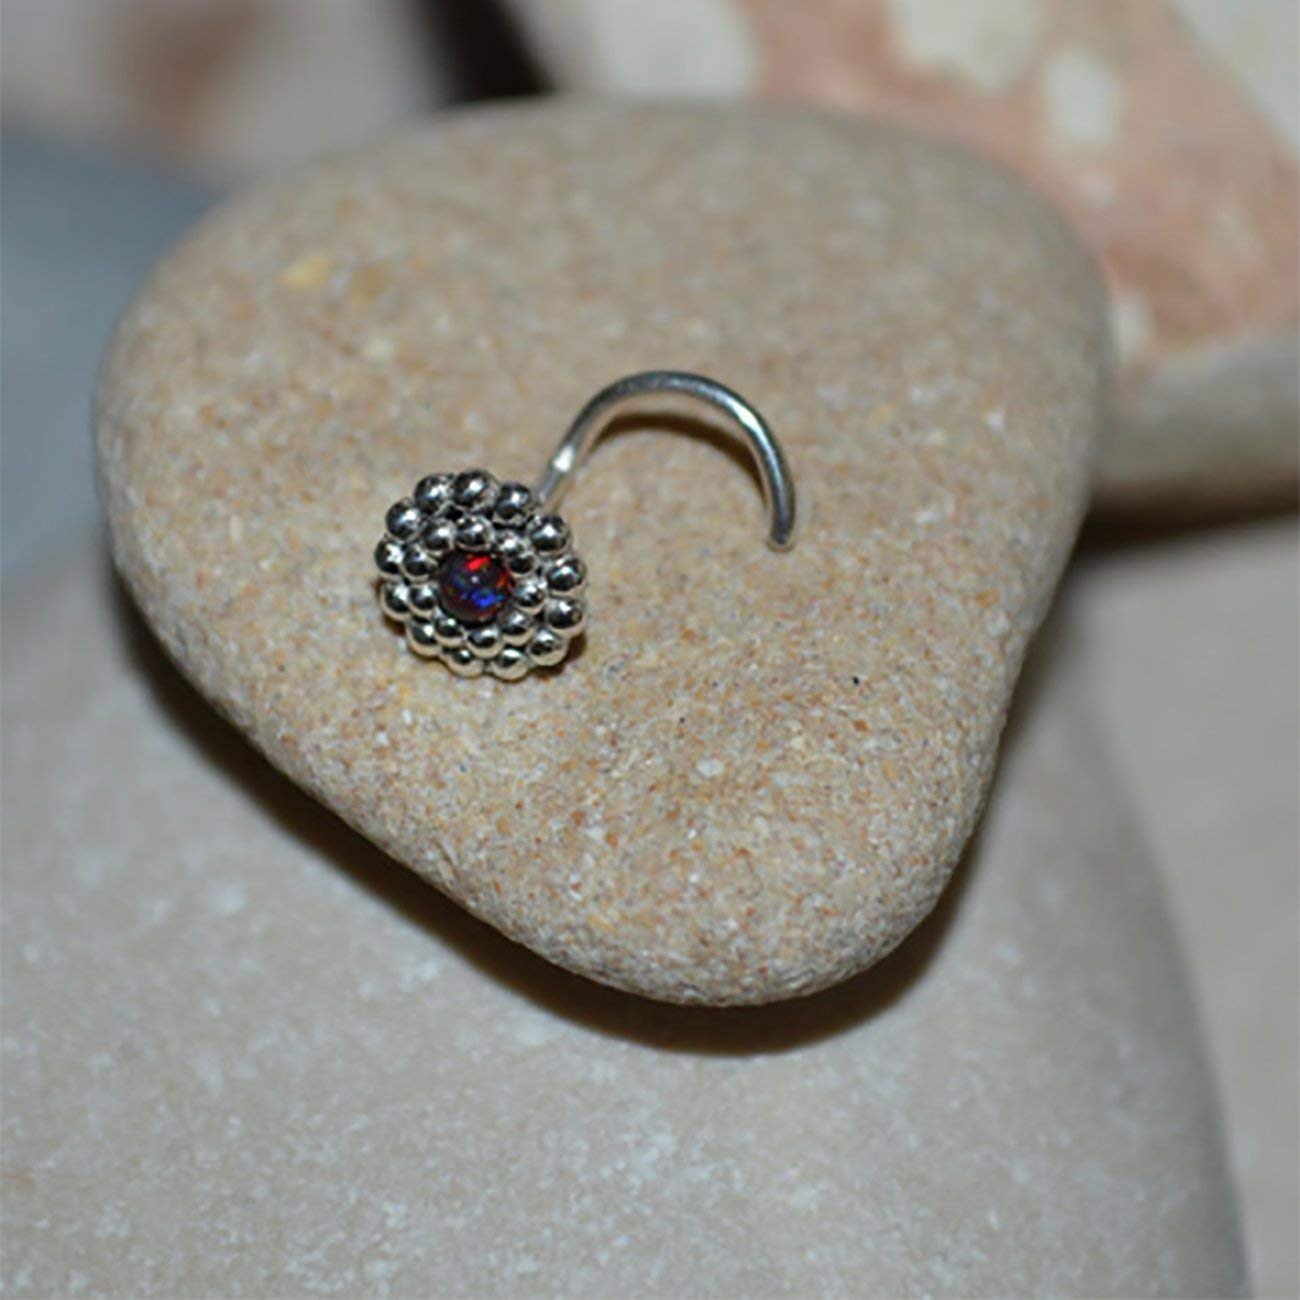 3b0dcec8c Get Quotations · 2mm Black-Red Opal TRAGUS STUD//Silver Nose Stud - Tragus Earring  Stud